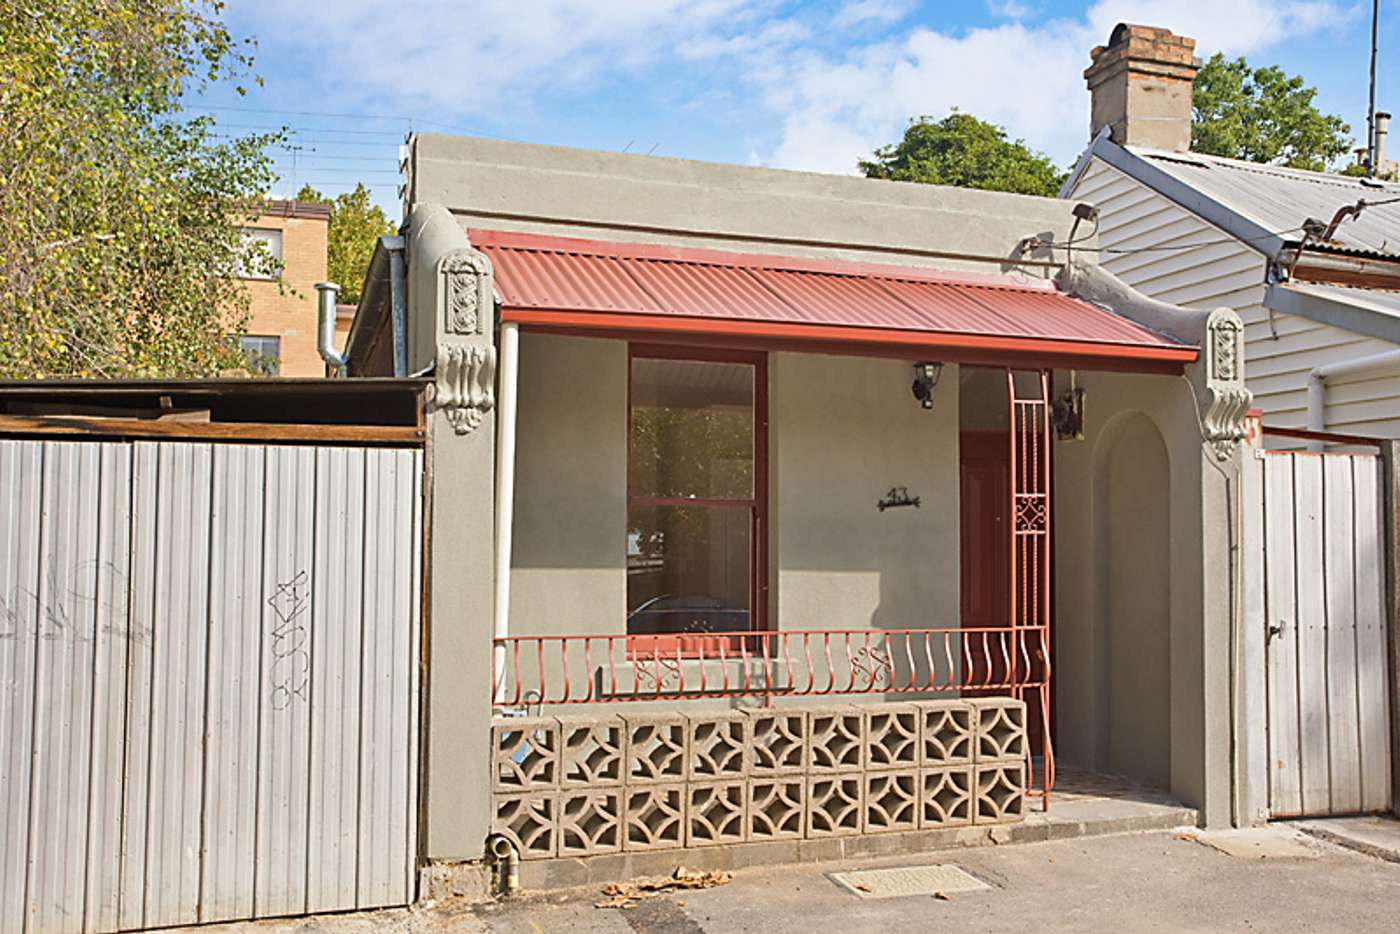 Main view of Homely house listing, 43 OShanassy Street, North Melbourne VIC 3051